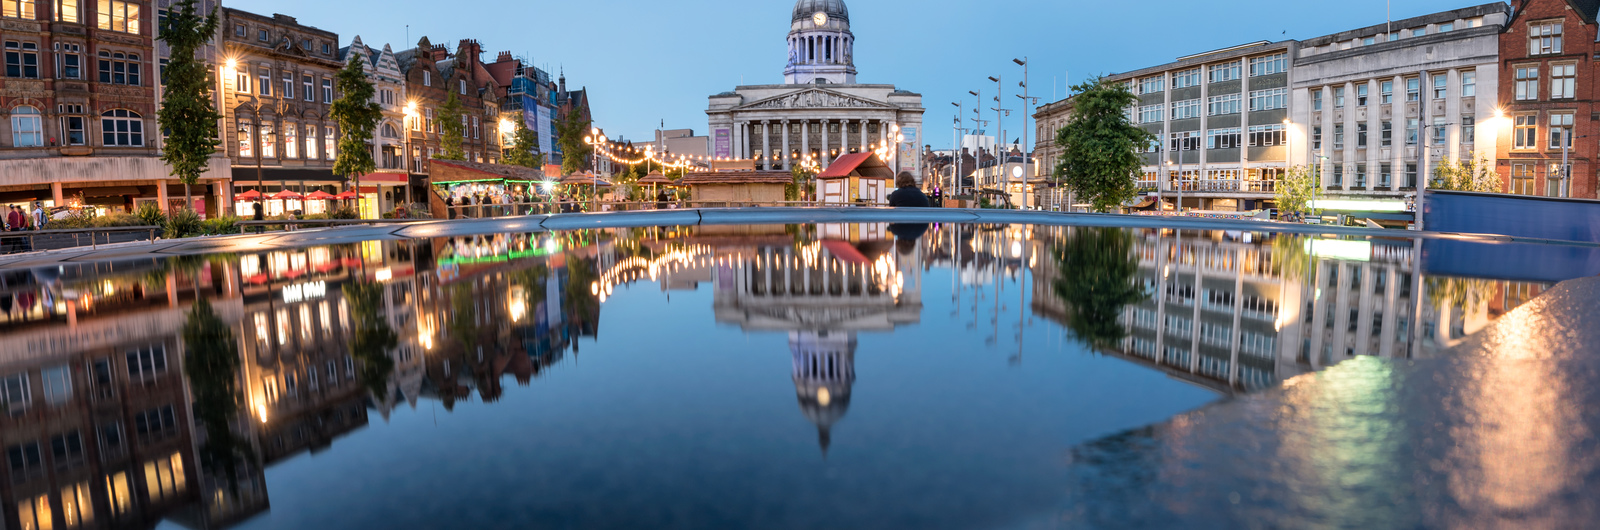 nottingham city header